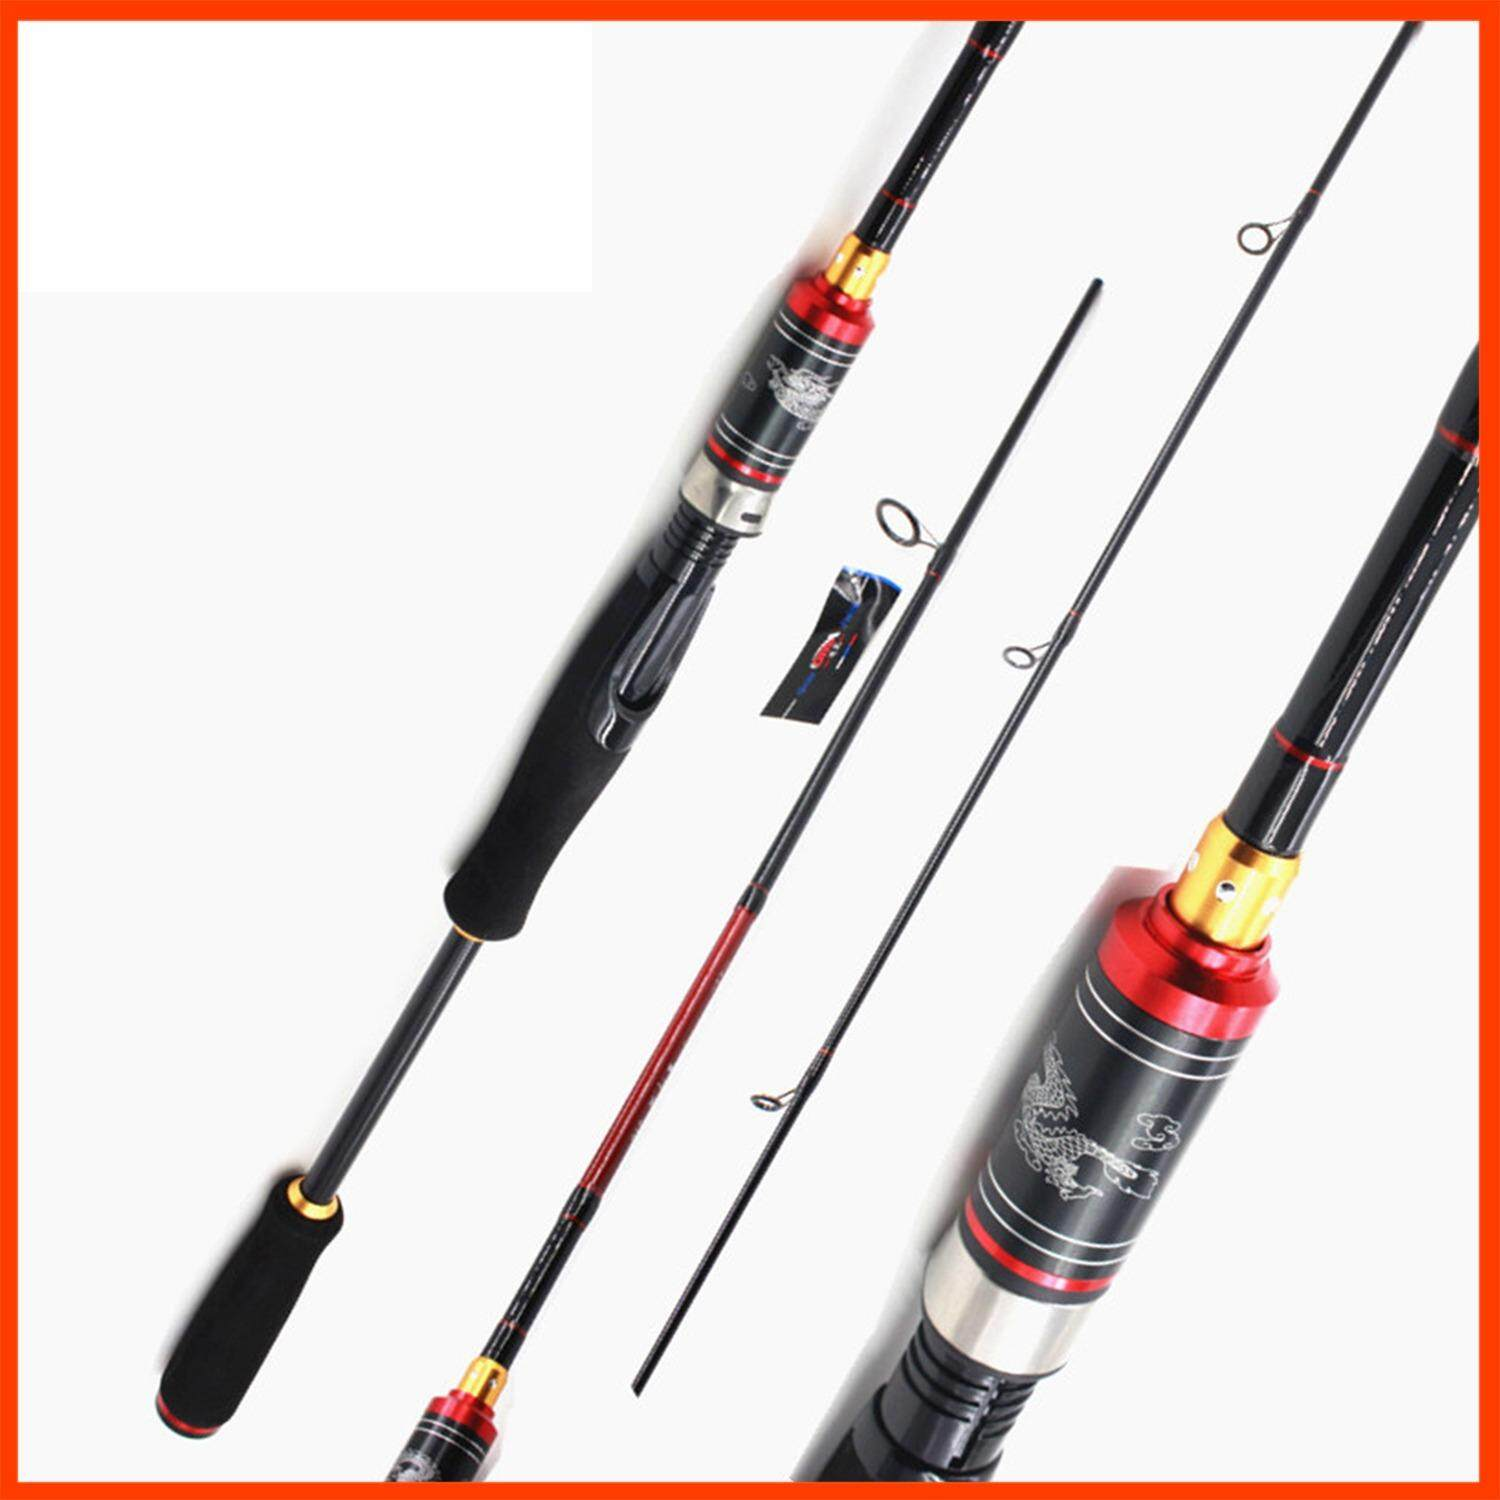 Cheap Straight Handle 2 1M Ultralight Carbon Spinning Casting Lure Fishing Rod High Performance Spinning Travel Pole Sea Fishing Pole Sea Rivers And Lakes Pond Reservoir Stream Fast Action Fishing Shook Rod Intl Online